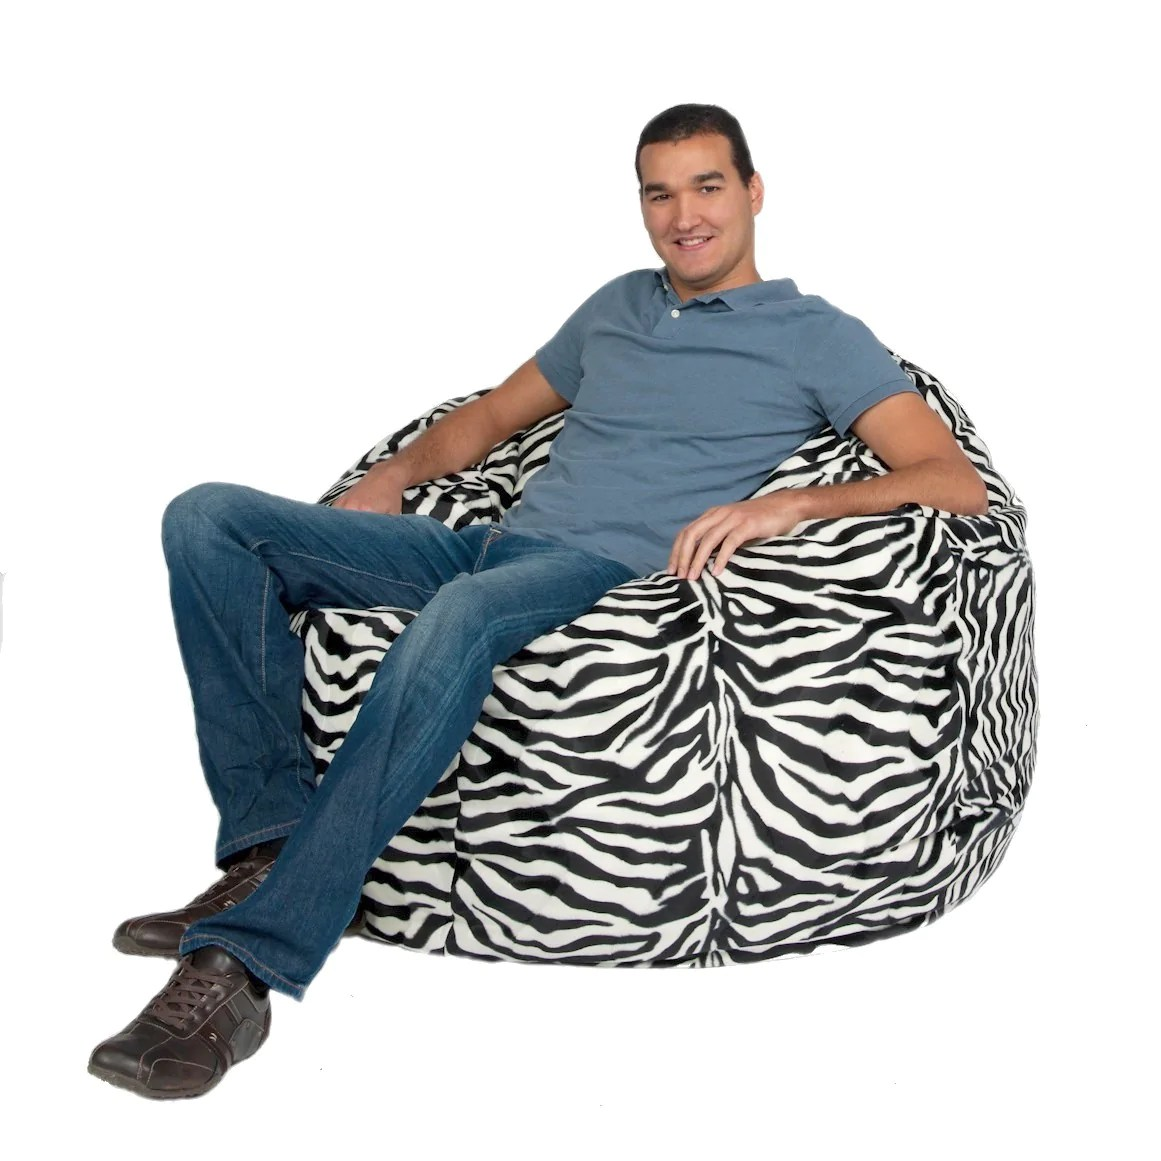 chair covers giant tiger the posture bean bag large 4 foot cozy sack premium foam filled